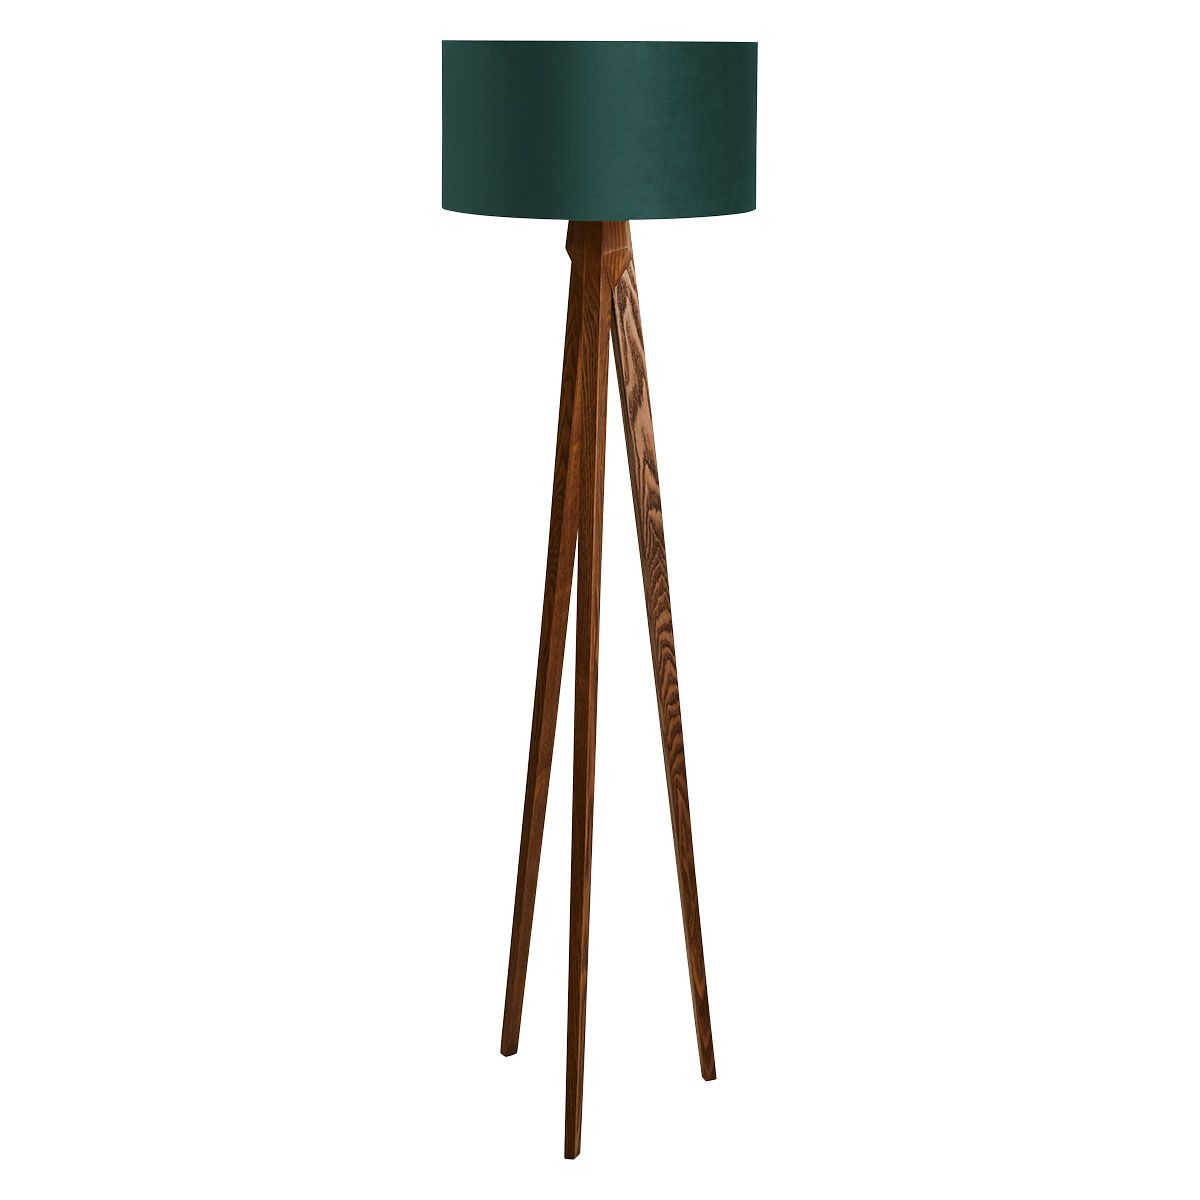 Habitat Tripod Walnut Wooden Floor Lamp With Green Velvet Shade 180 X 49cm Wooden Floor Lamps Green Floor Lamp Floor Lamp